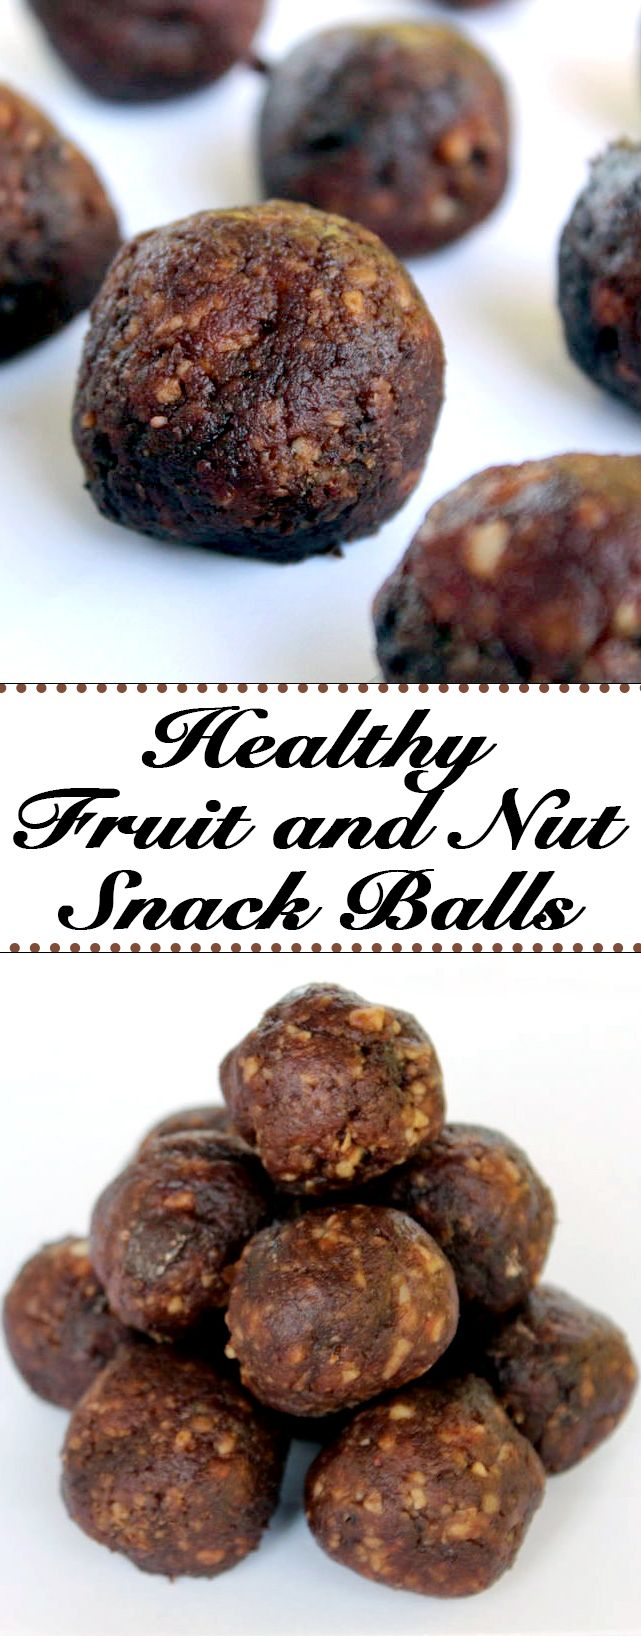 These healthy fruit and nut snack balls make a perfect snack anytime. They are essentially dates, cranberries, cherries, almonds, and walnuts, and deliver the nutrition of the fruit and the protein and fiber of the nuts.